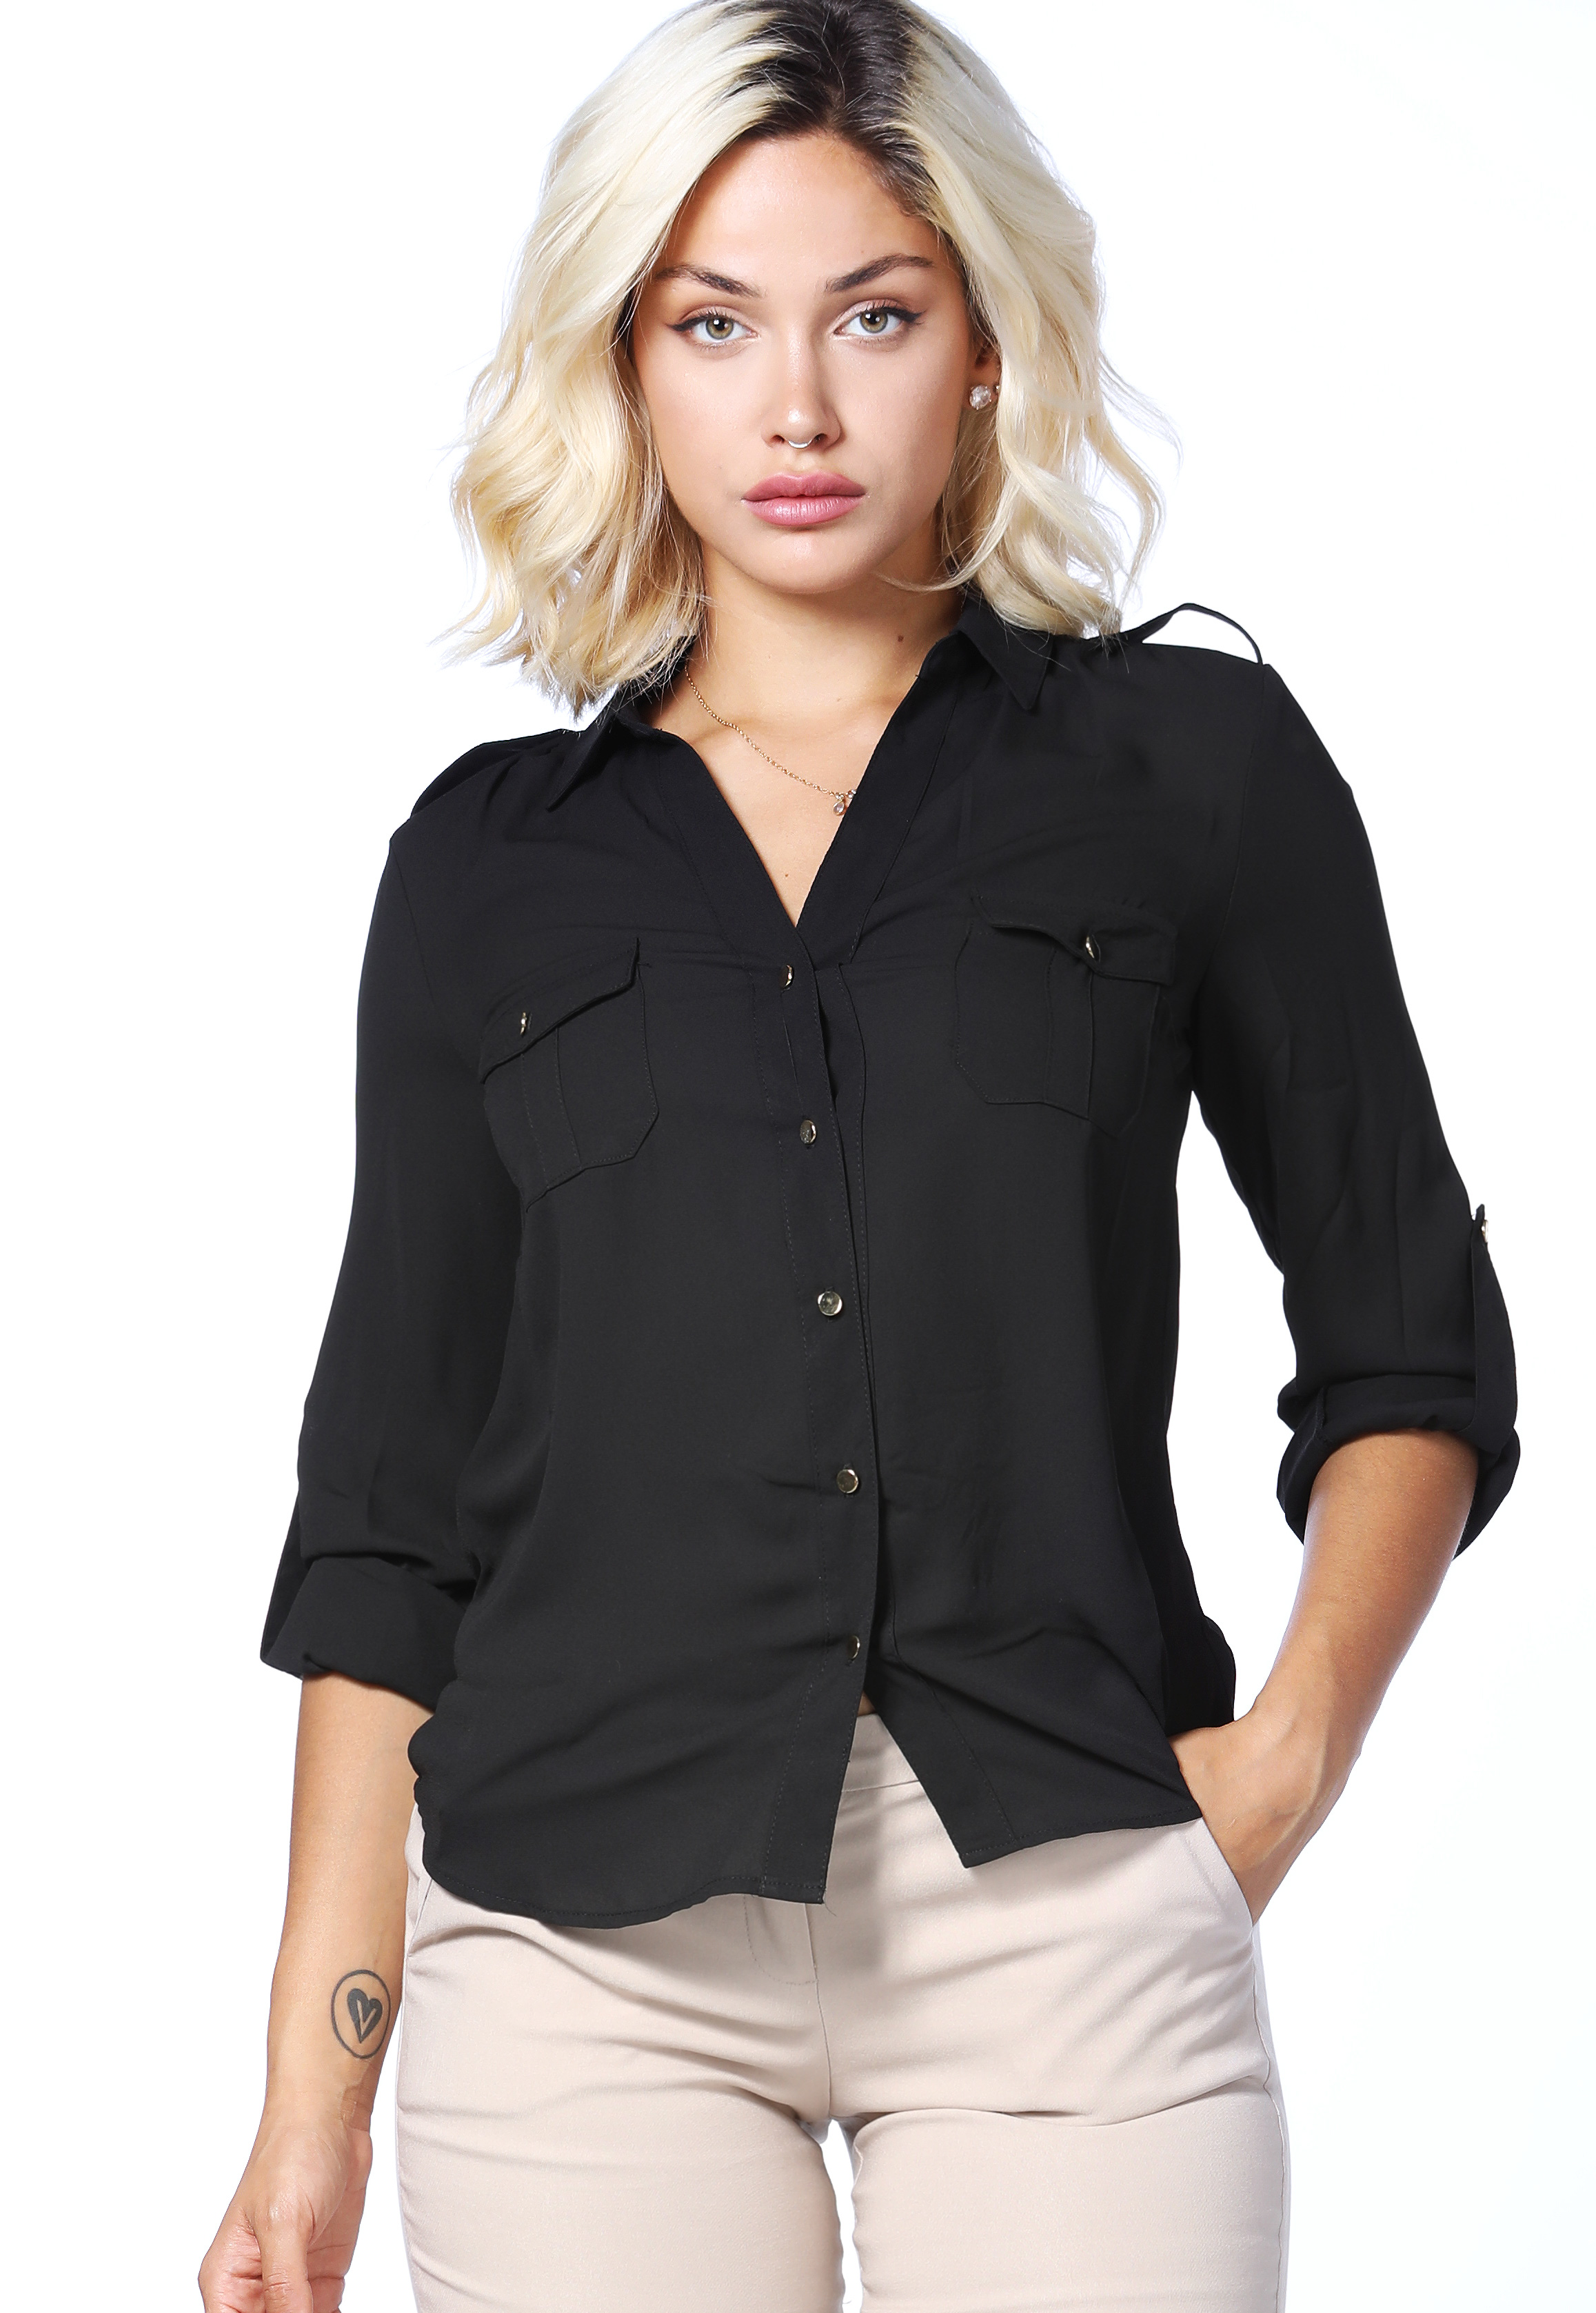 Sheer Button Up Dressy Blouse